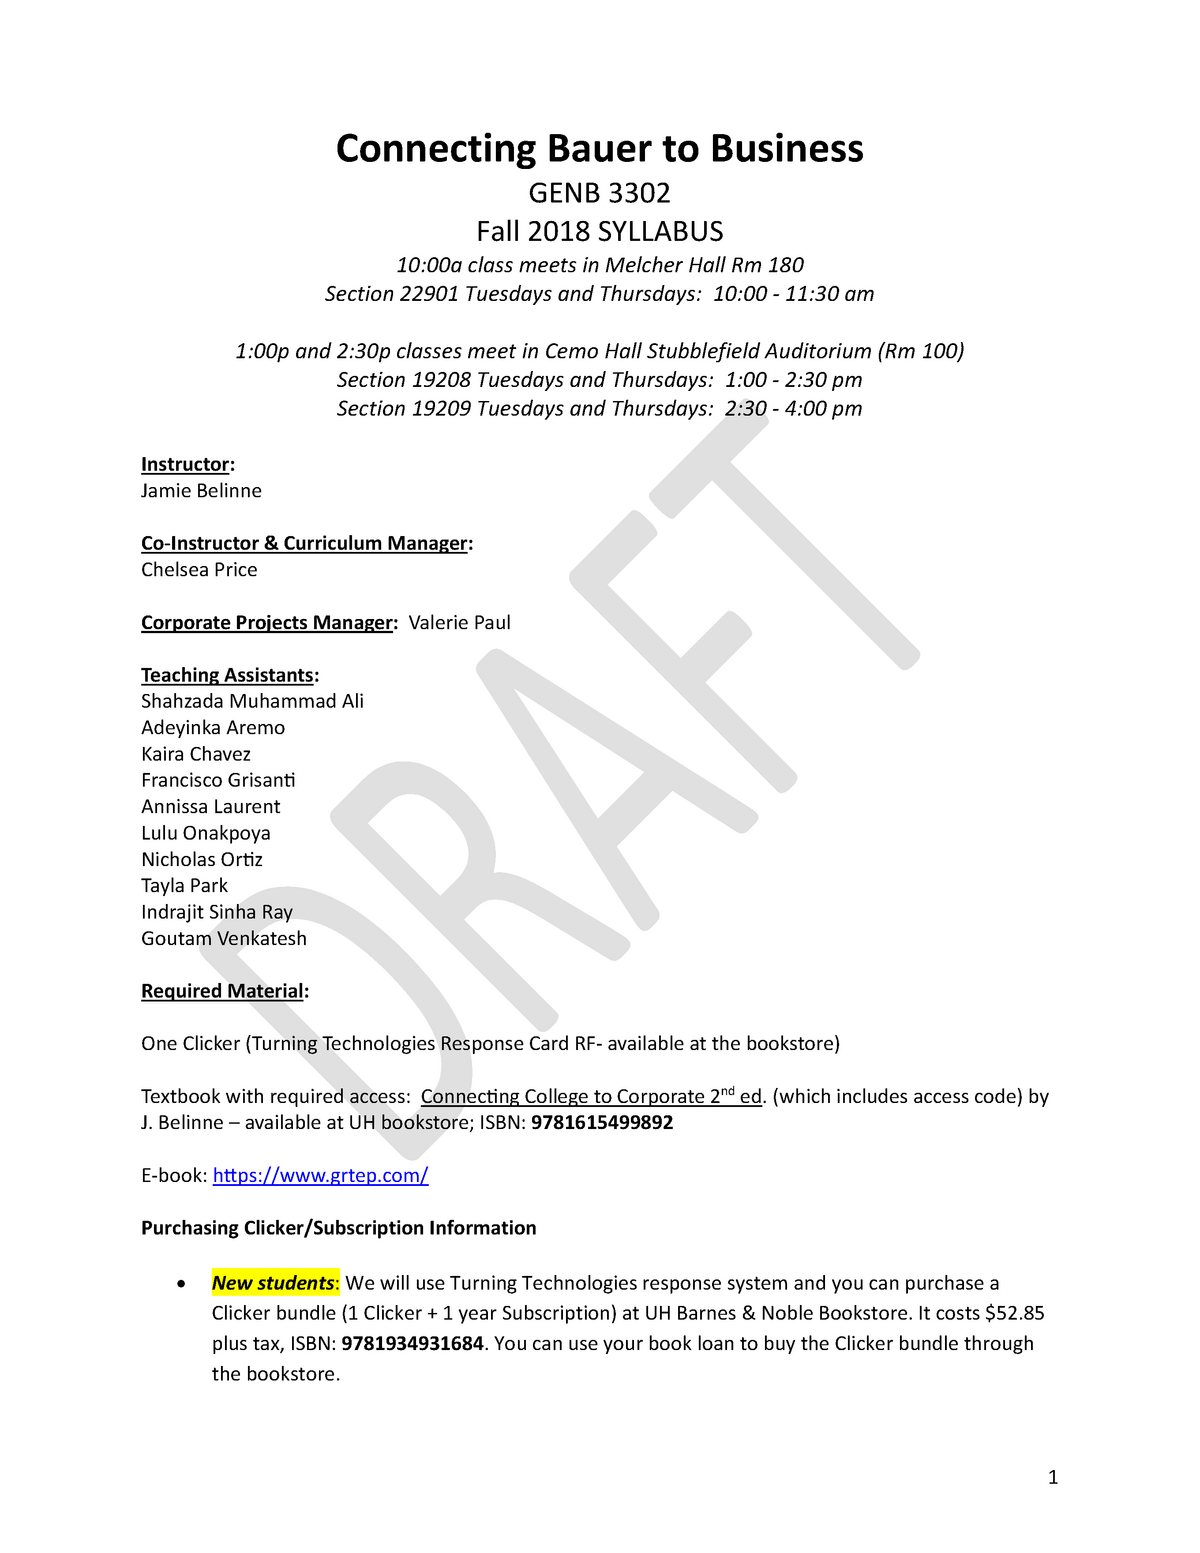 Fa18 Syllabus 330211 Genb 3302 Connecting Bauer To Business